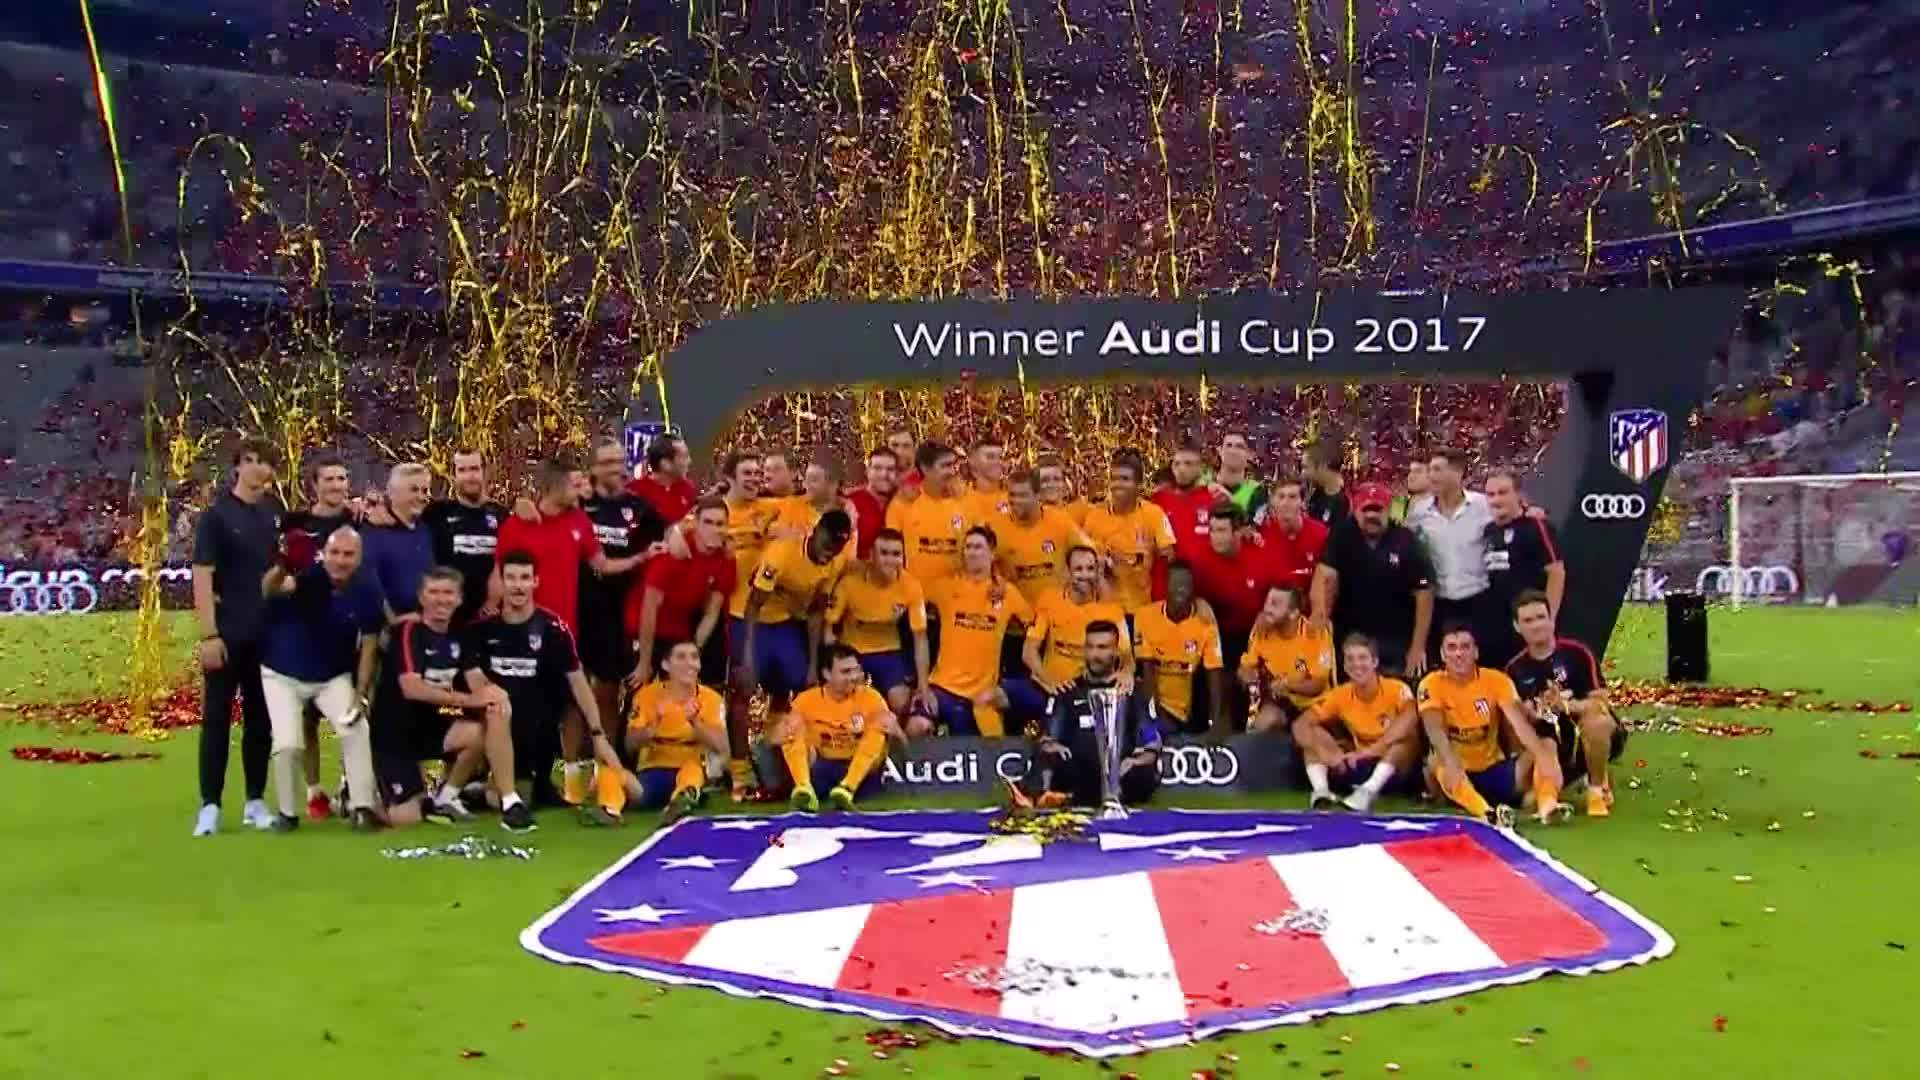 Audi Cup Highlights 2017